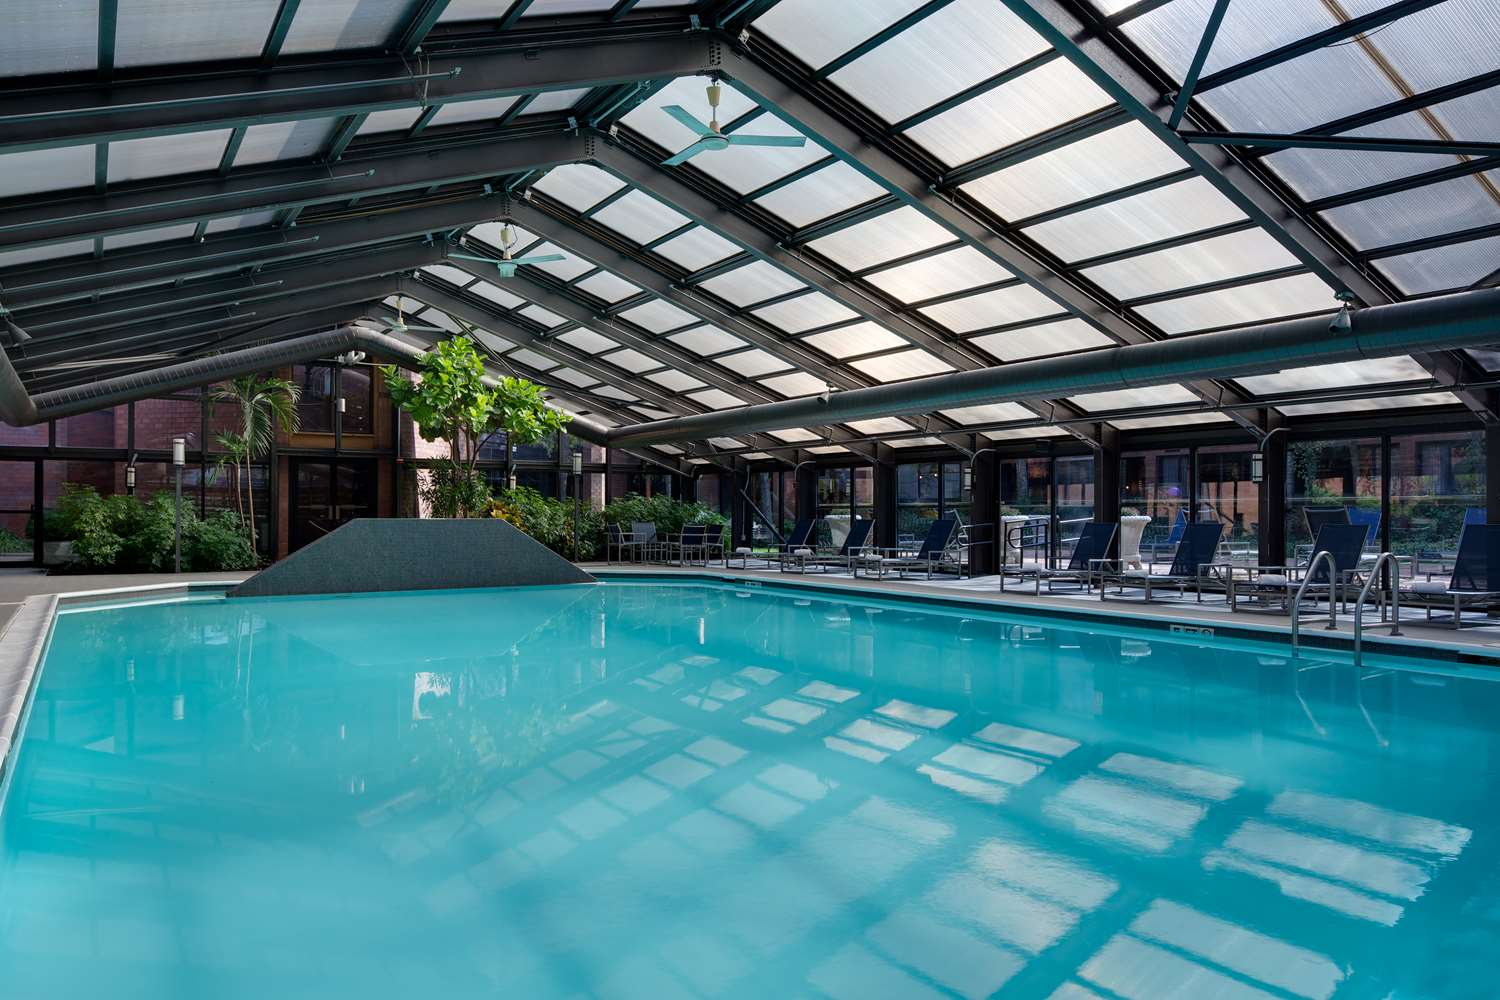 Hotels In Princeton Nj With Indoor Pool